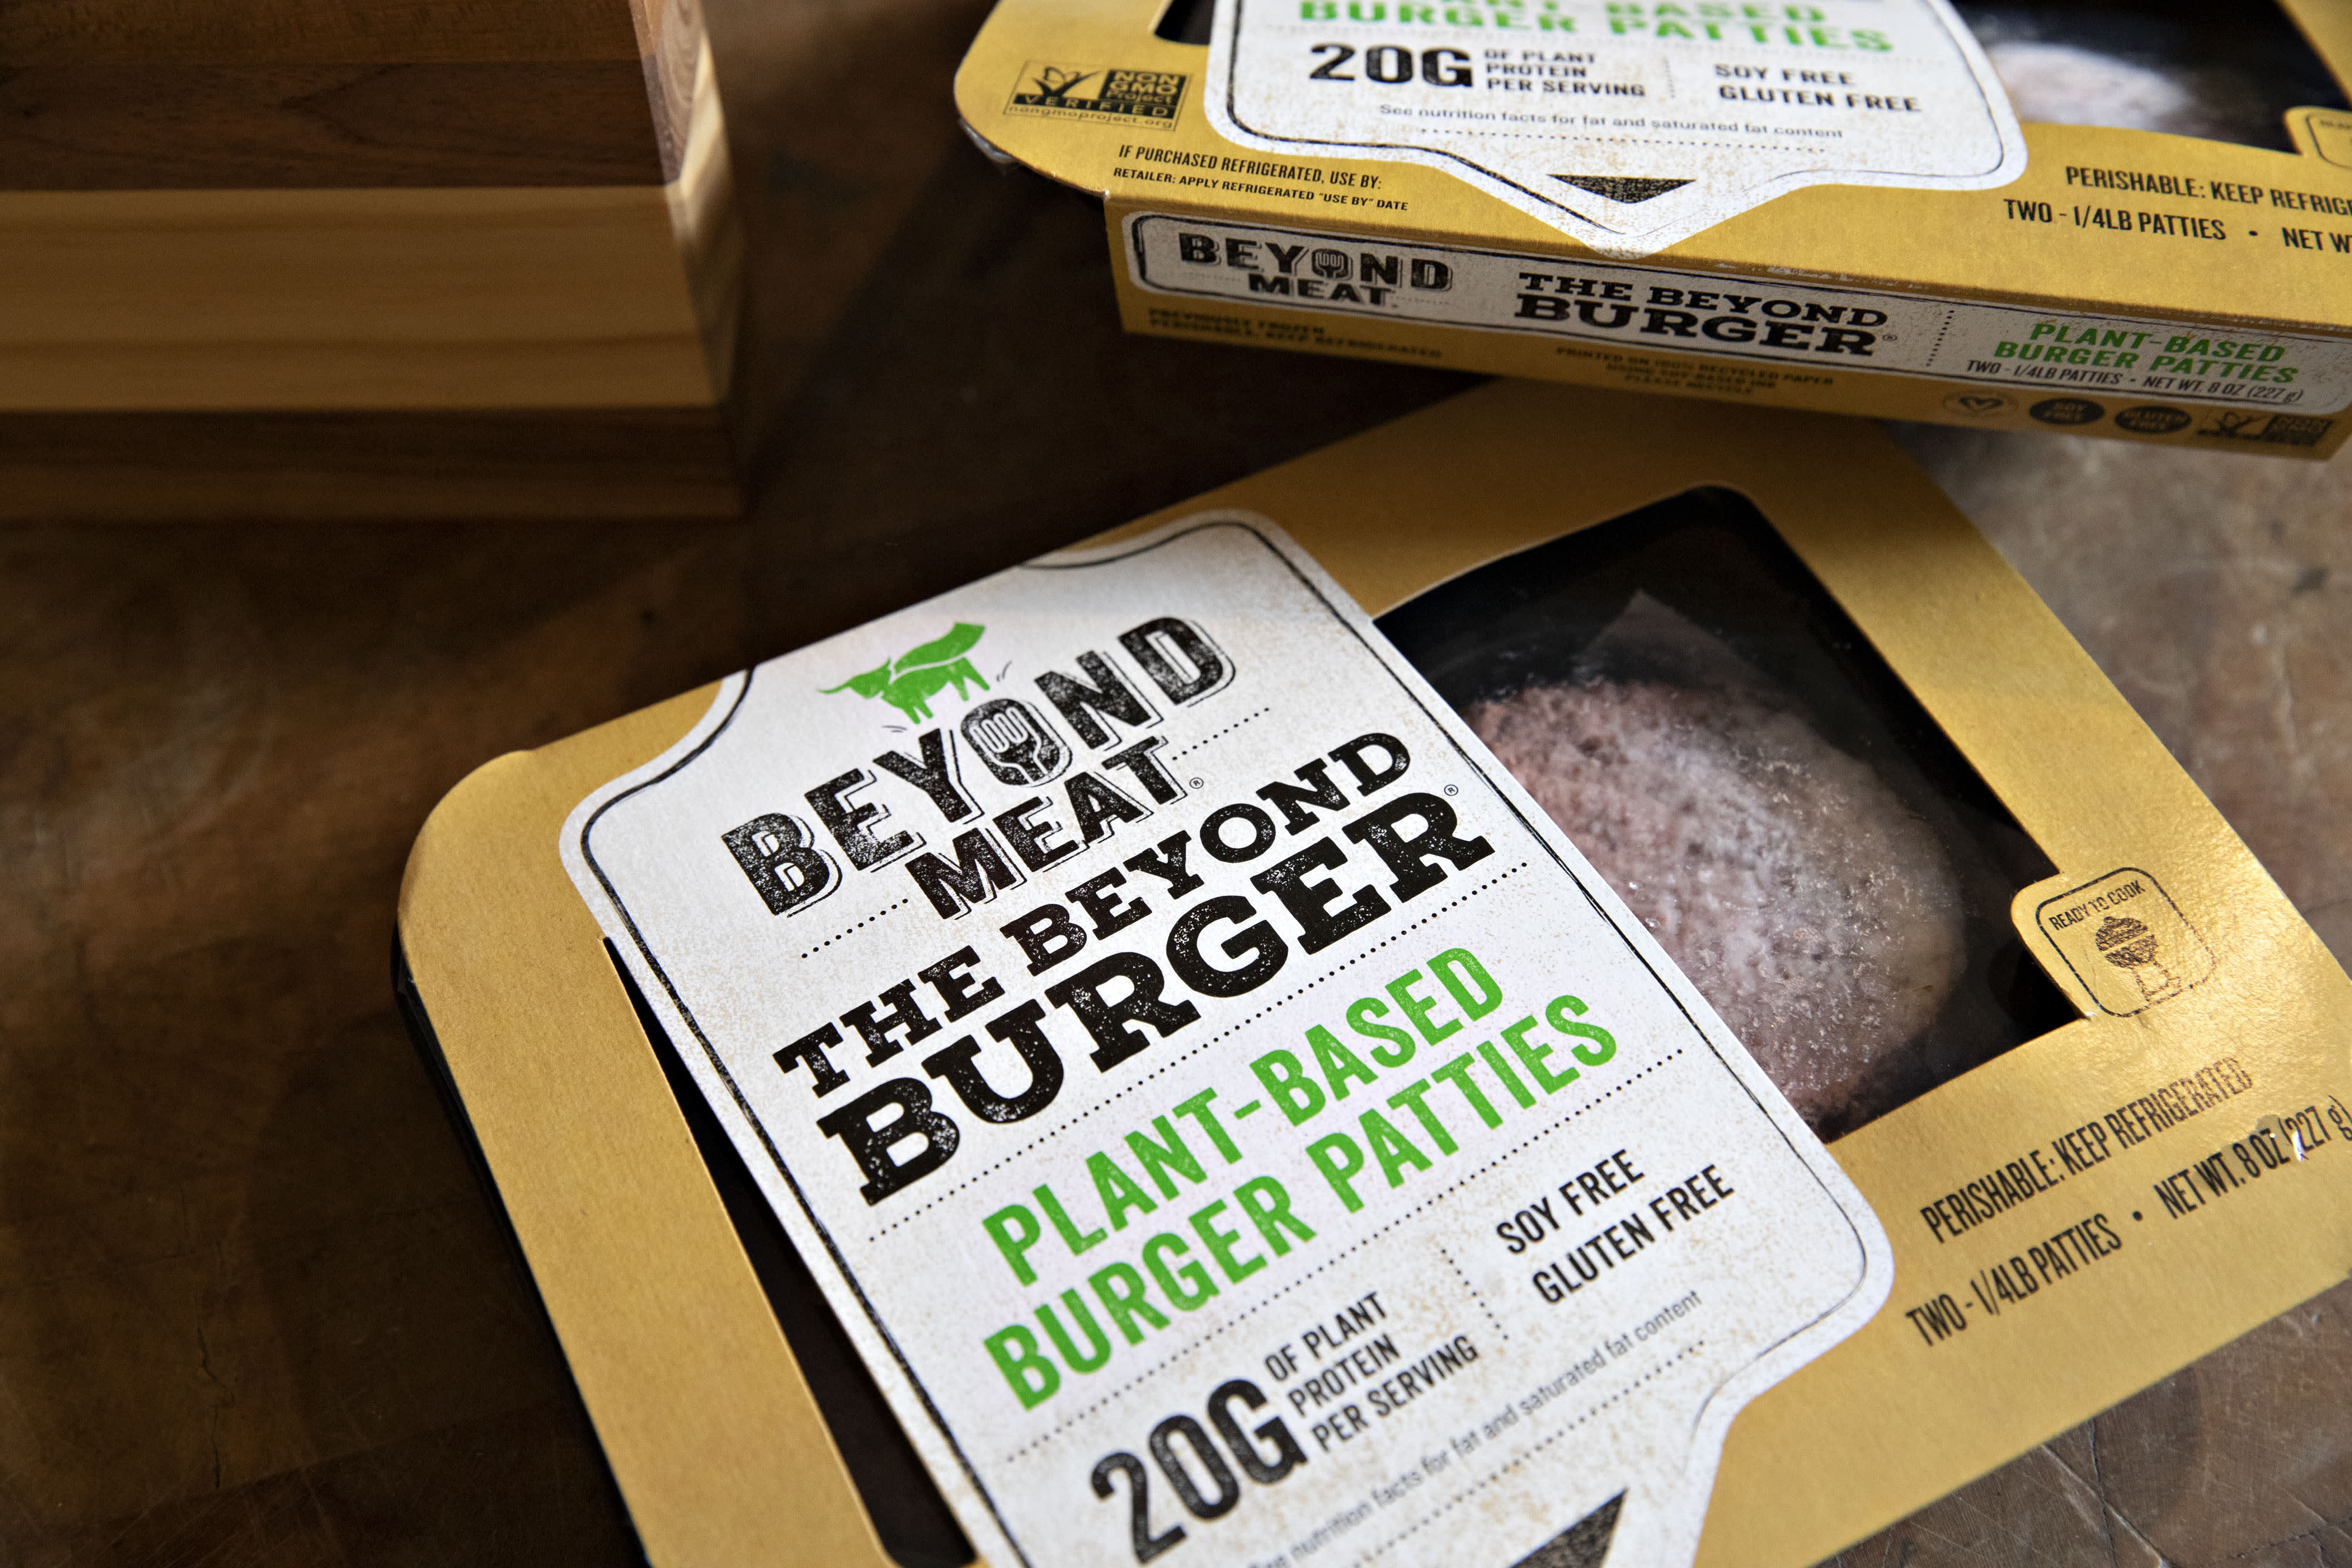 Packages of Beyond Meat plant-based burger patties are displayed for a photograph in Tiskilwa, Illinois.